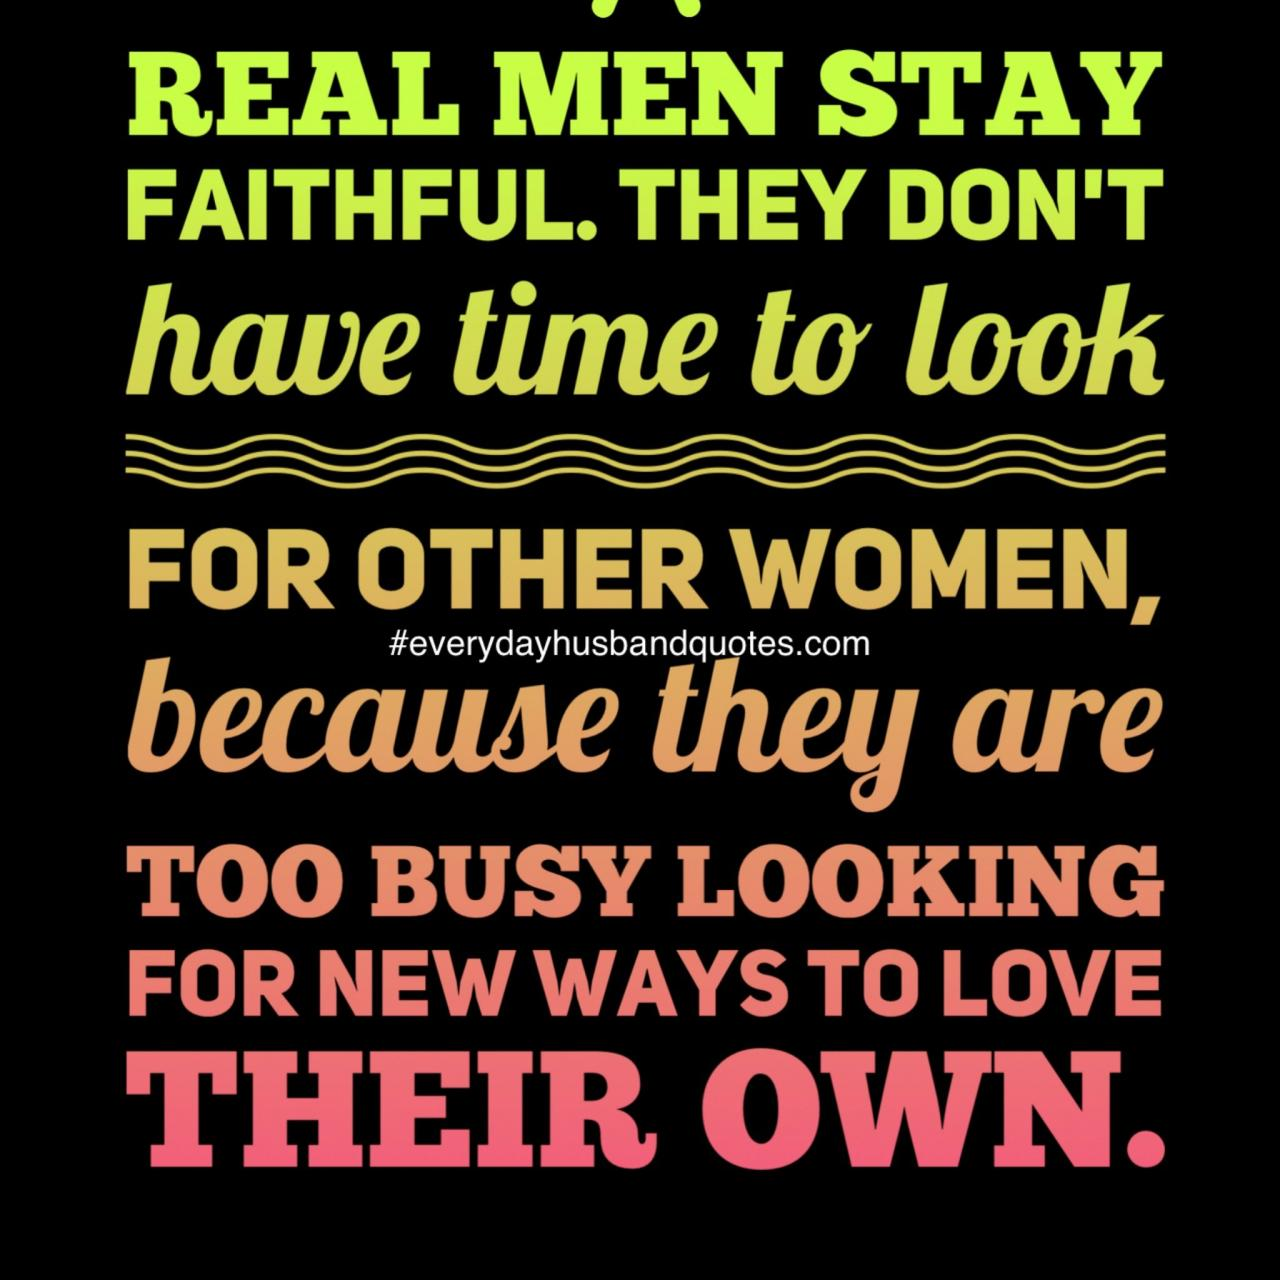 They Dont Have Time To Look For Other Women Because The Are Too Busy Looking For New Ways To Love Their Own